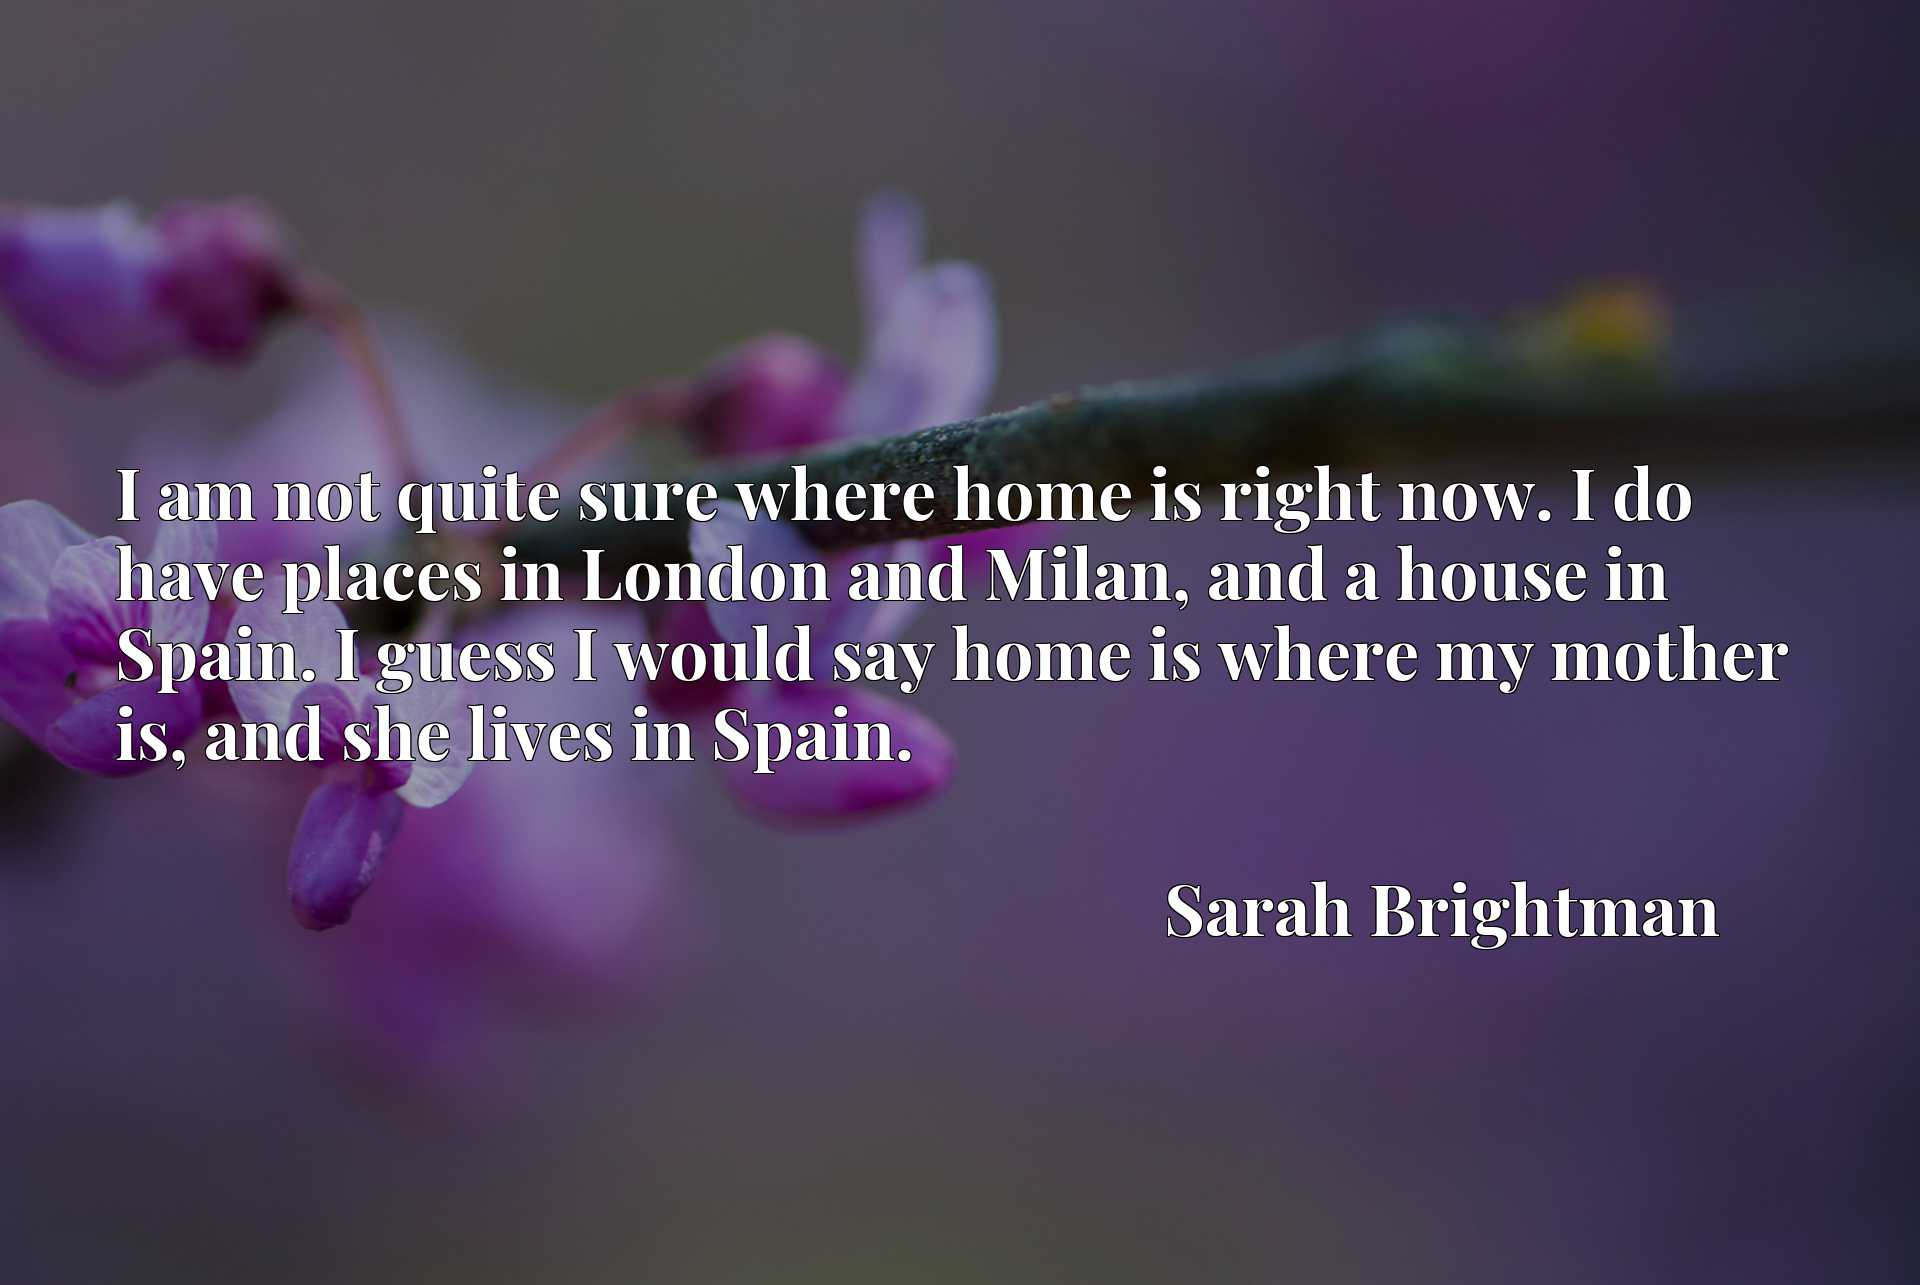 I am not quite sure where home is right now. I do have places in London and Milan, and a house in Spain. I guess I would say home is where my mother is, and she lives in Spain.